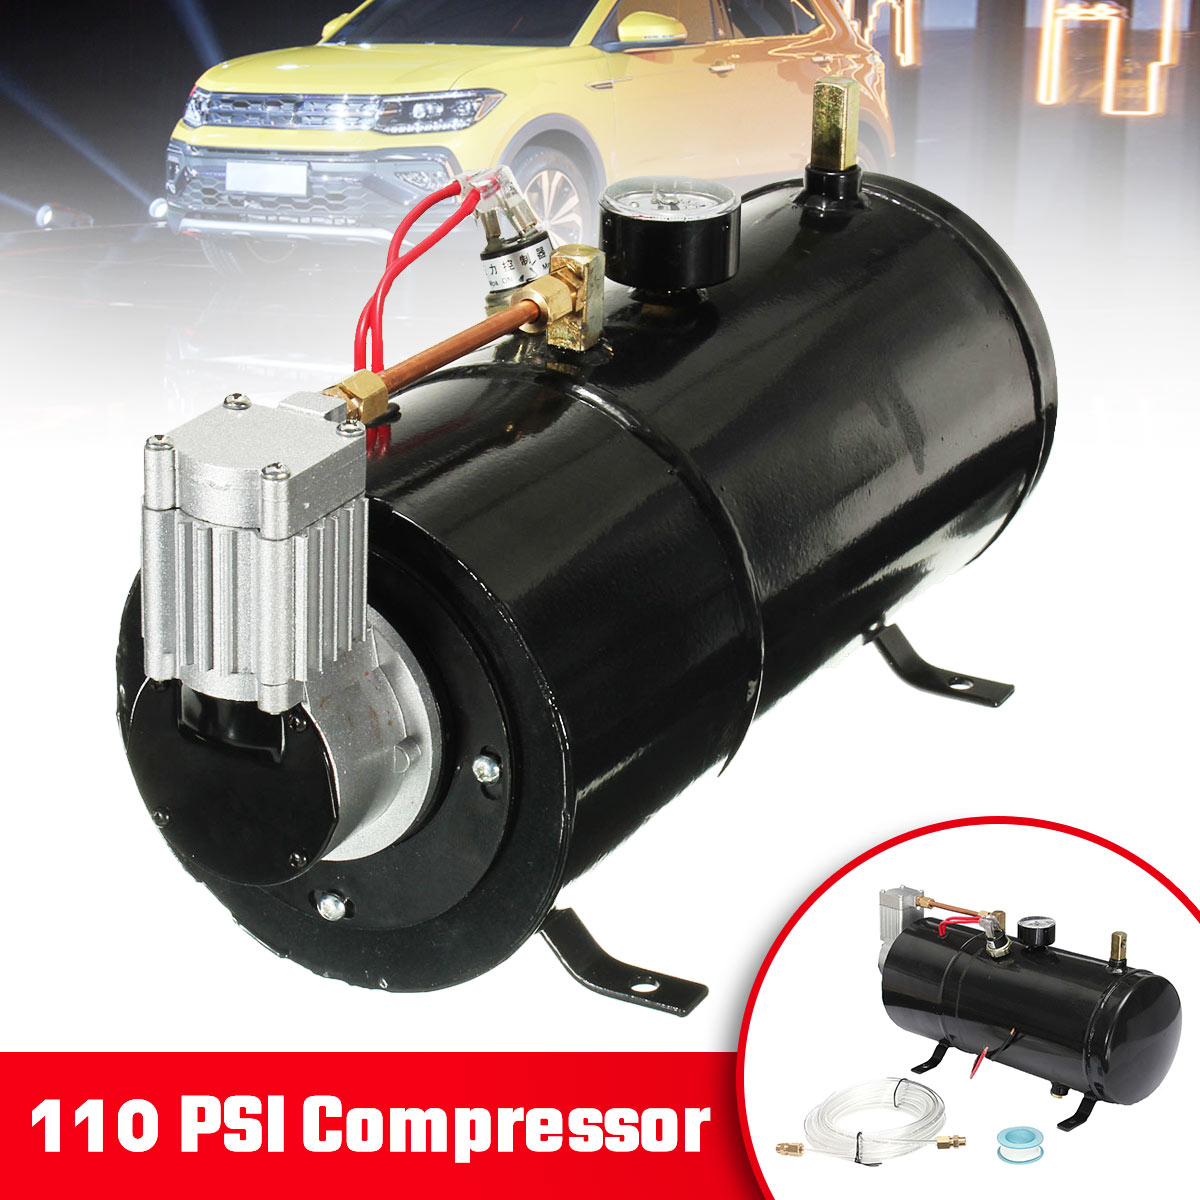 Multi-tone & Claxon Horns For Air Horn Train Truck Auto Bicycles Tire L110 Psi 24 V Compressor Electric Air Compressor With 3 Liters Tank Capacity H004 B